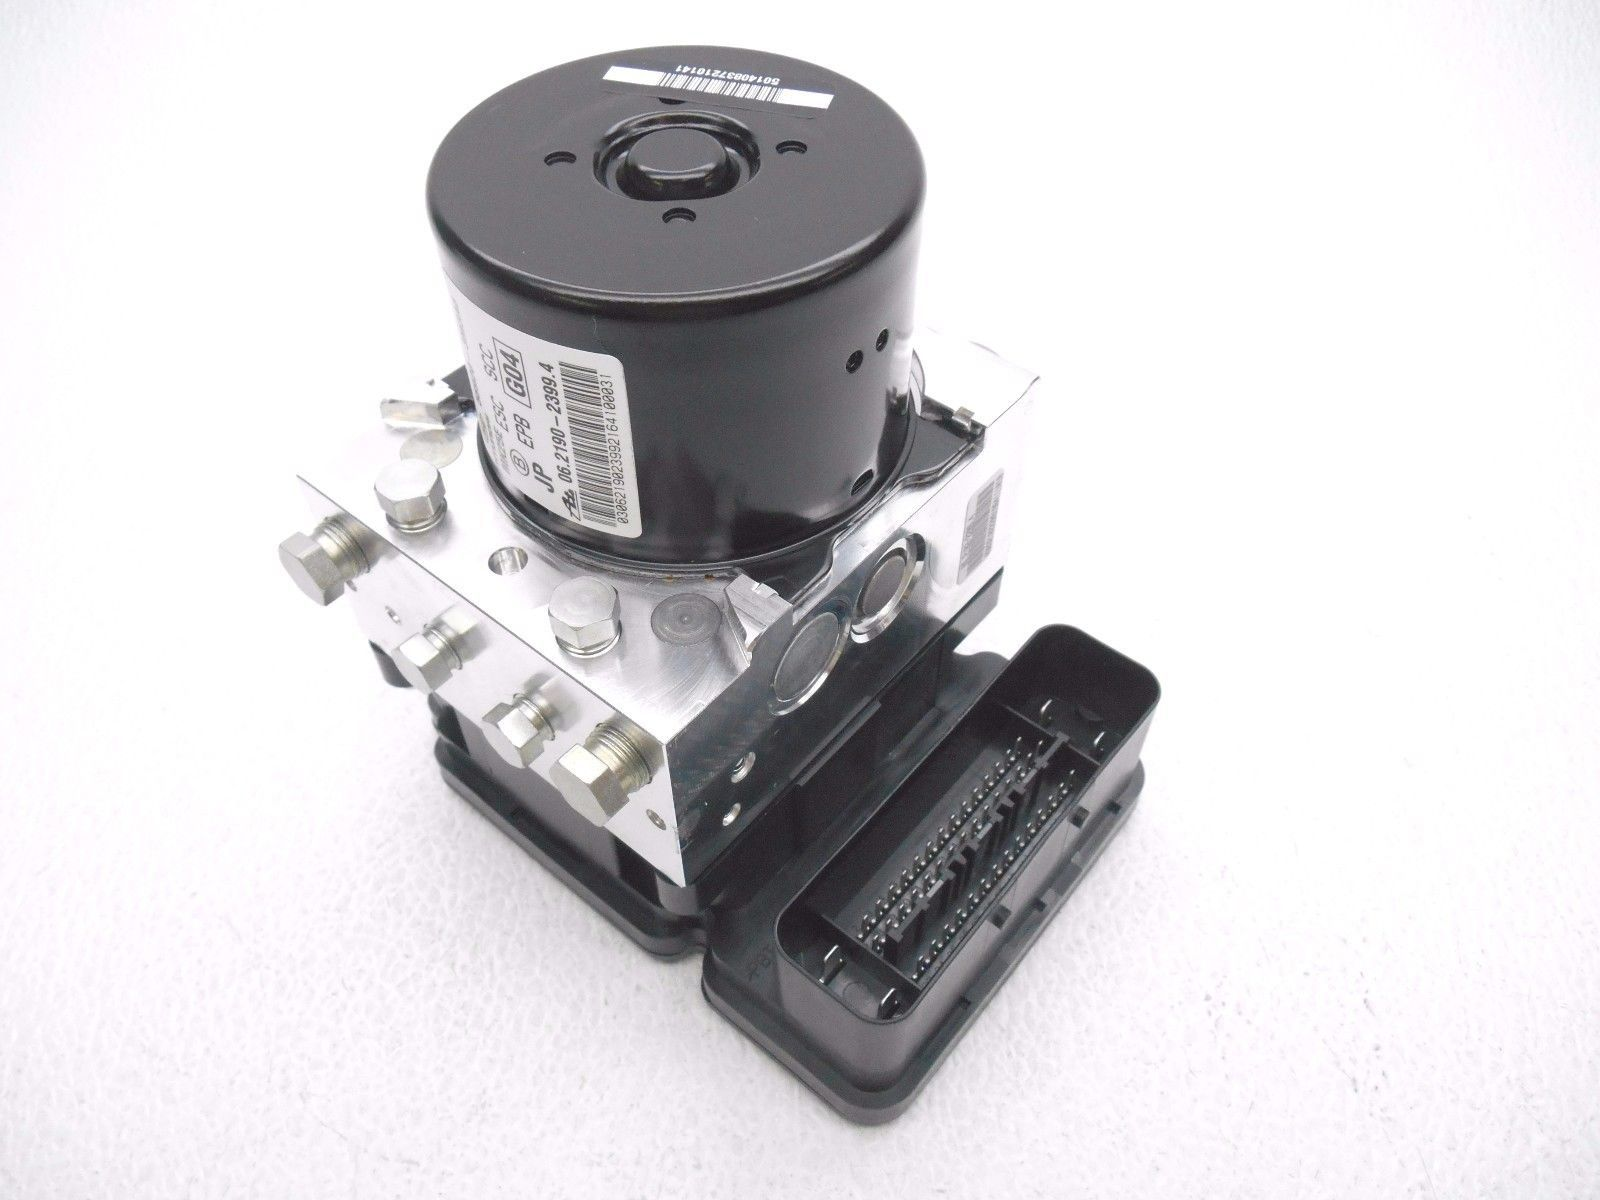 new oem 2012 2014 hyundai genesis abs anti lock brake unit module nice ebay. Black Bedroom Furniture Sets. Home Design Ideas